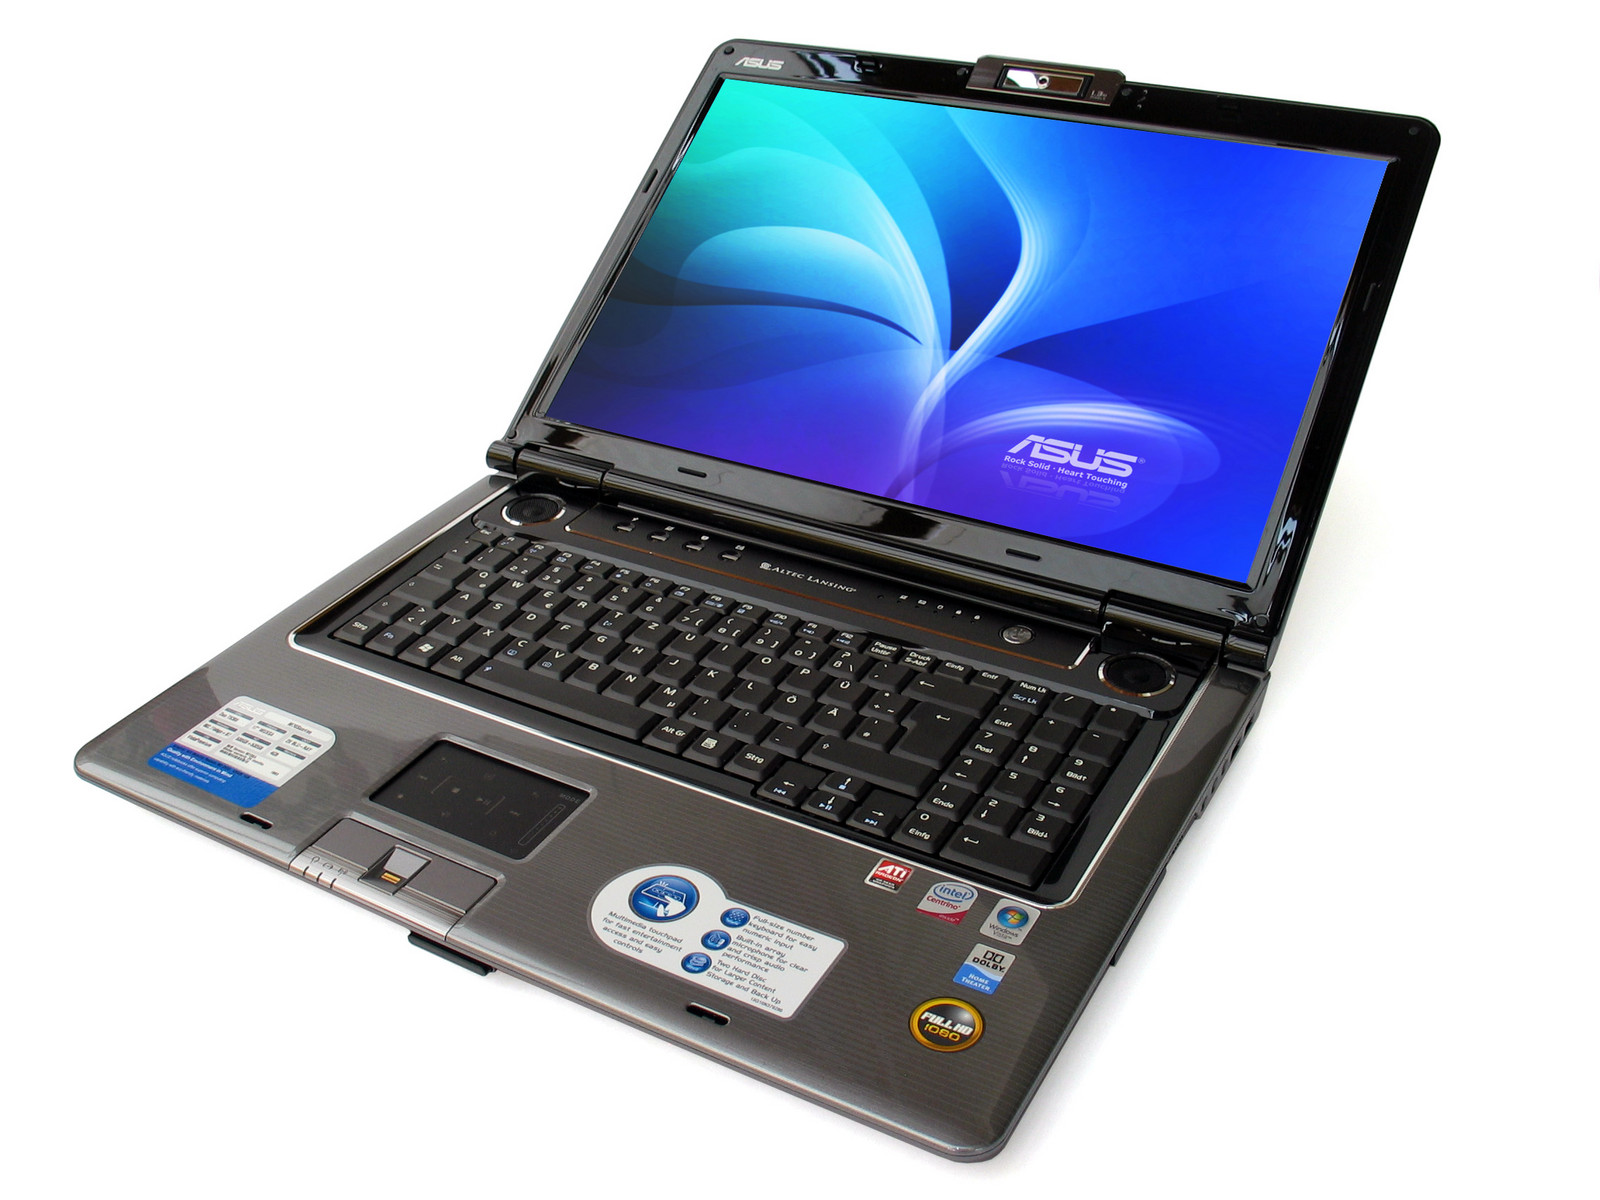 Dell Studio 1555 Notebook ATI Mobility Radeon HD 3650 Display Driver for Mac Download